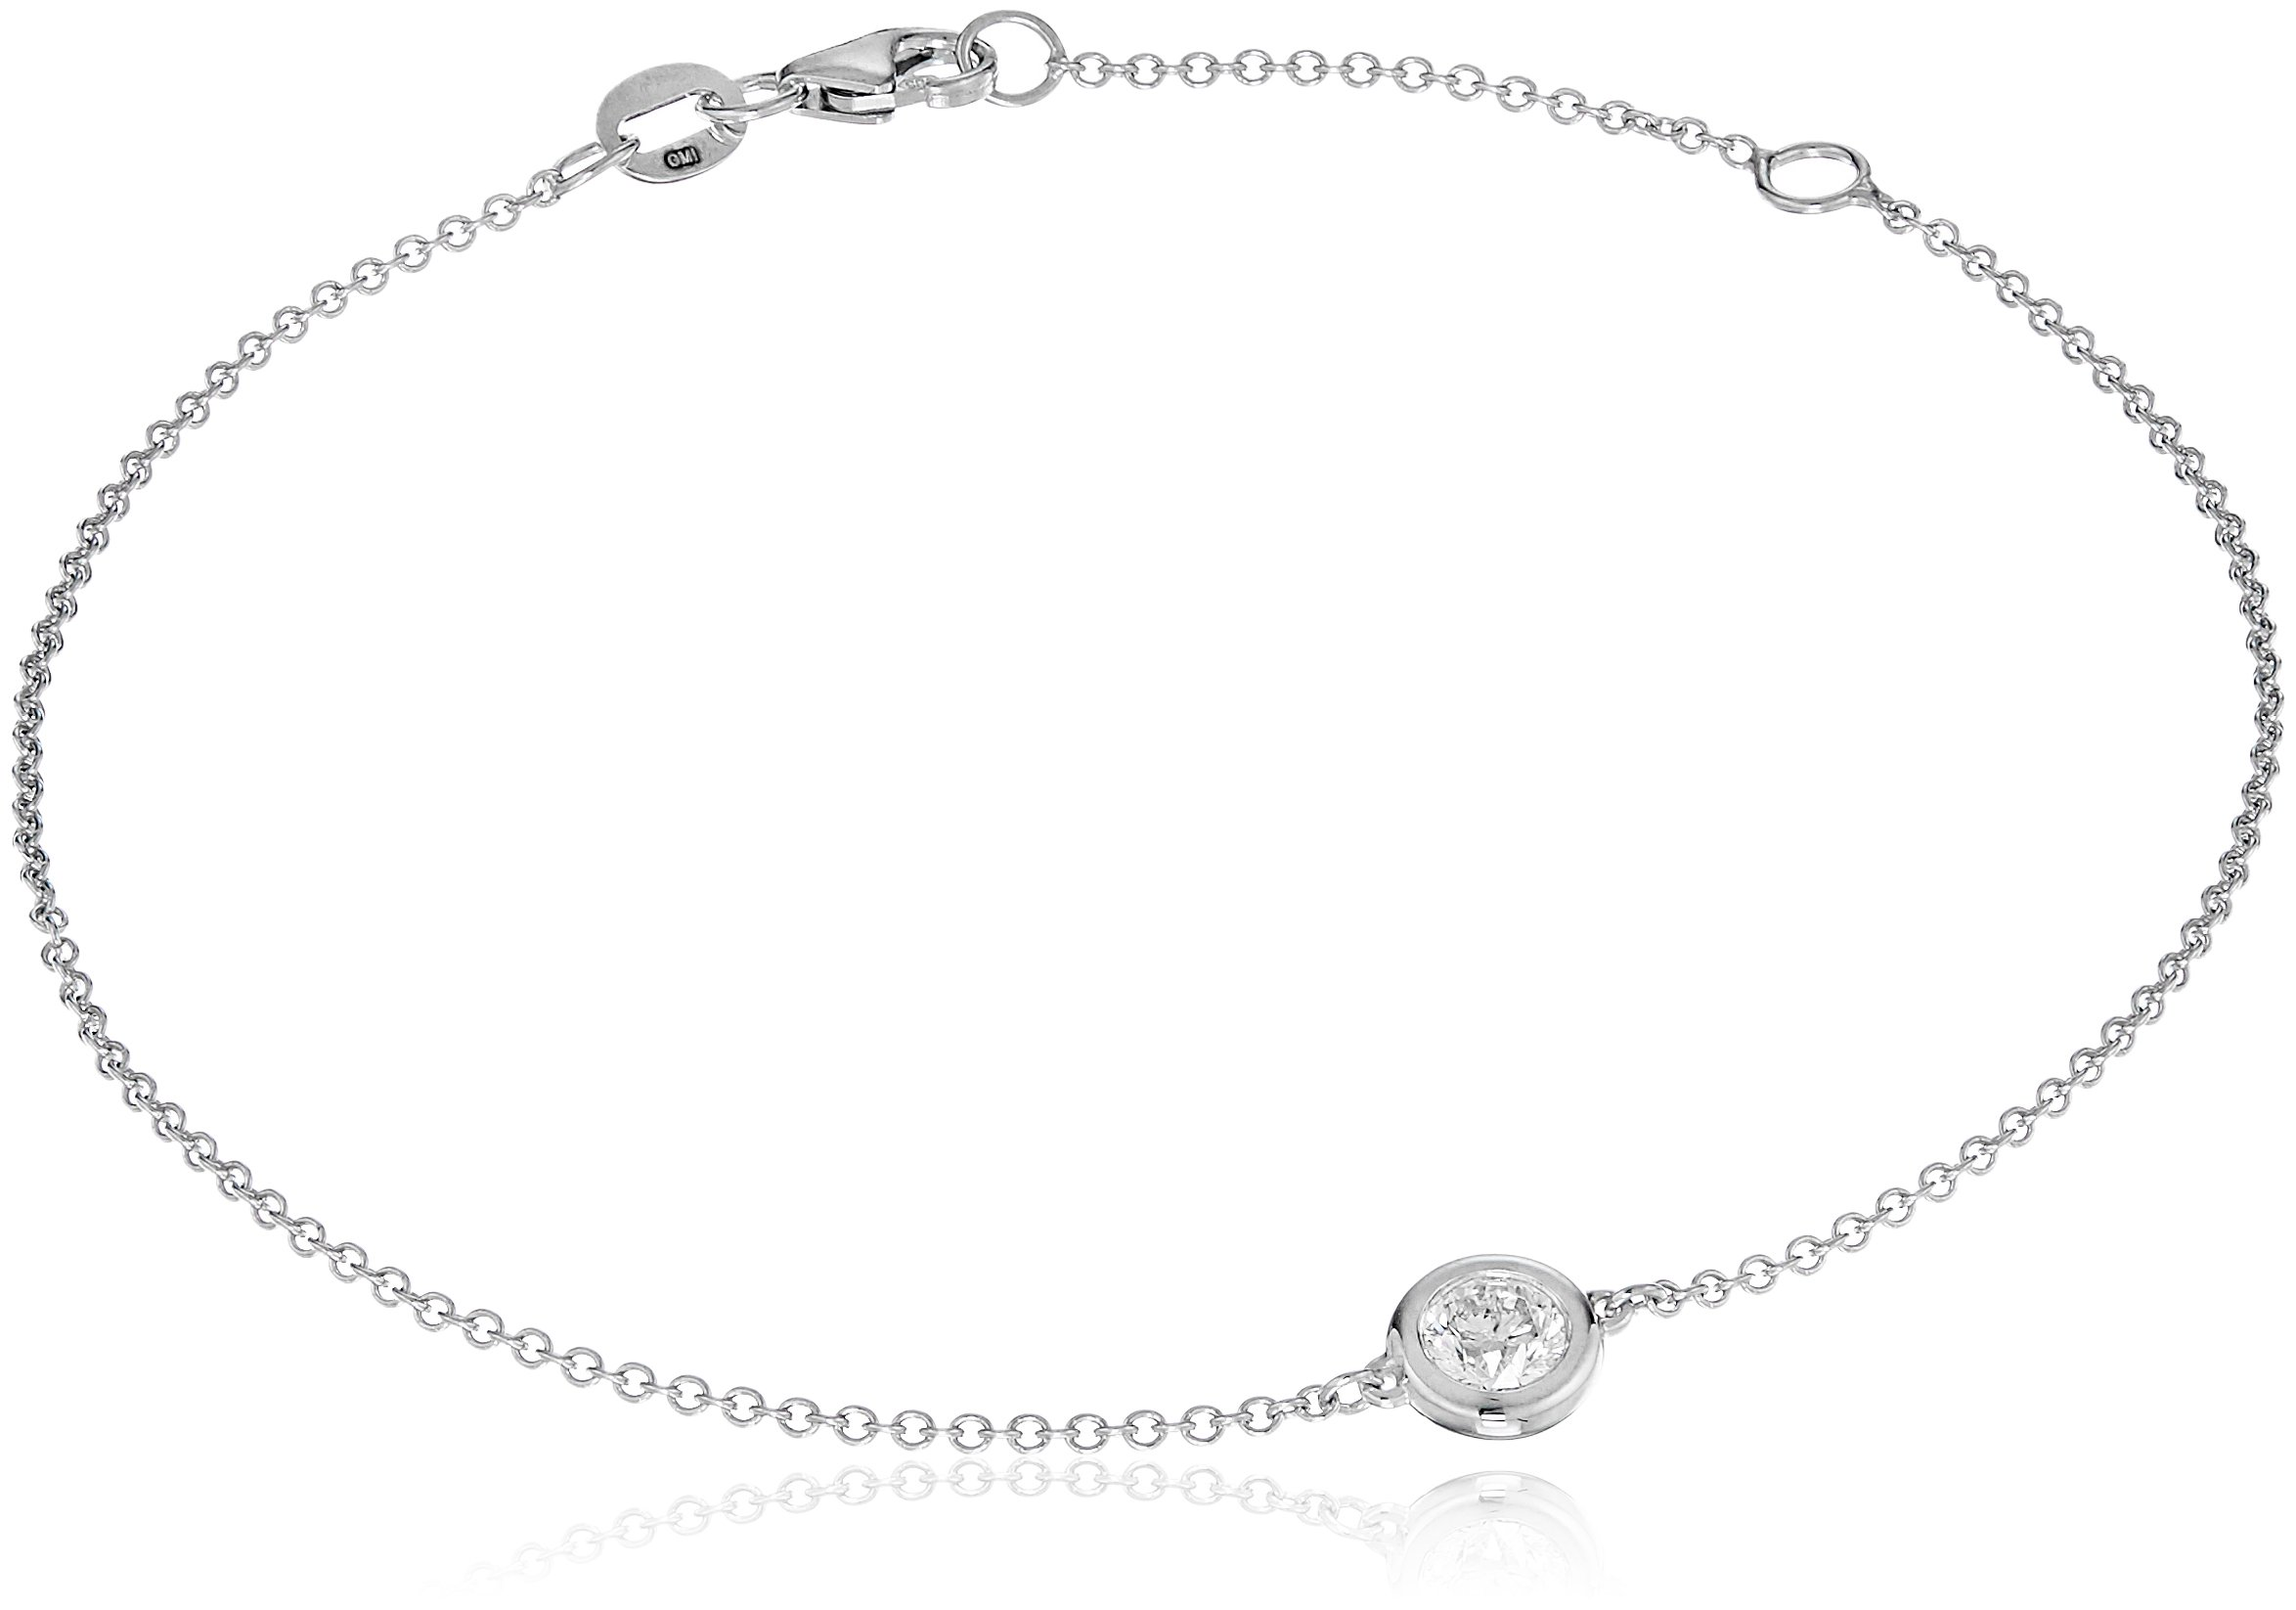 14k White Gold Solitaire Bezel Set Diamond with Lobster Clasp Strand Bracelet (1/4cttw, J-K Color, I2-I3 Clarity)